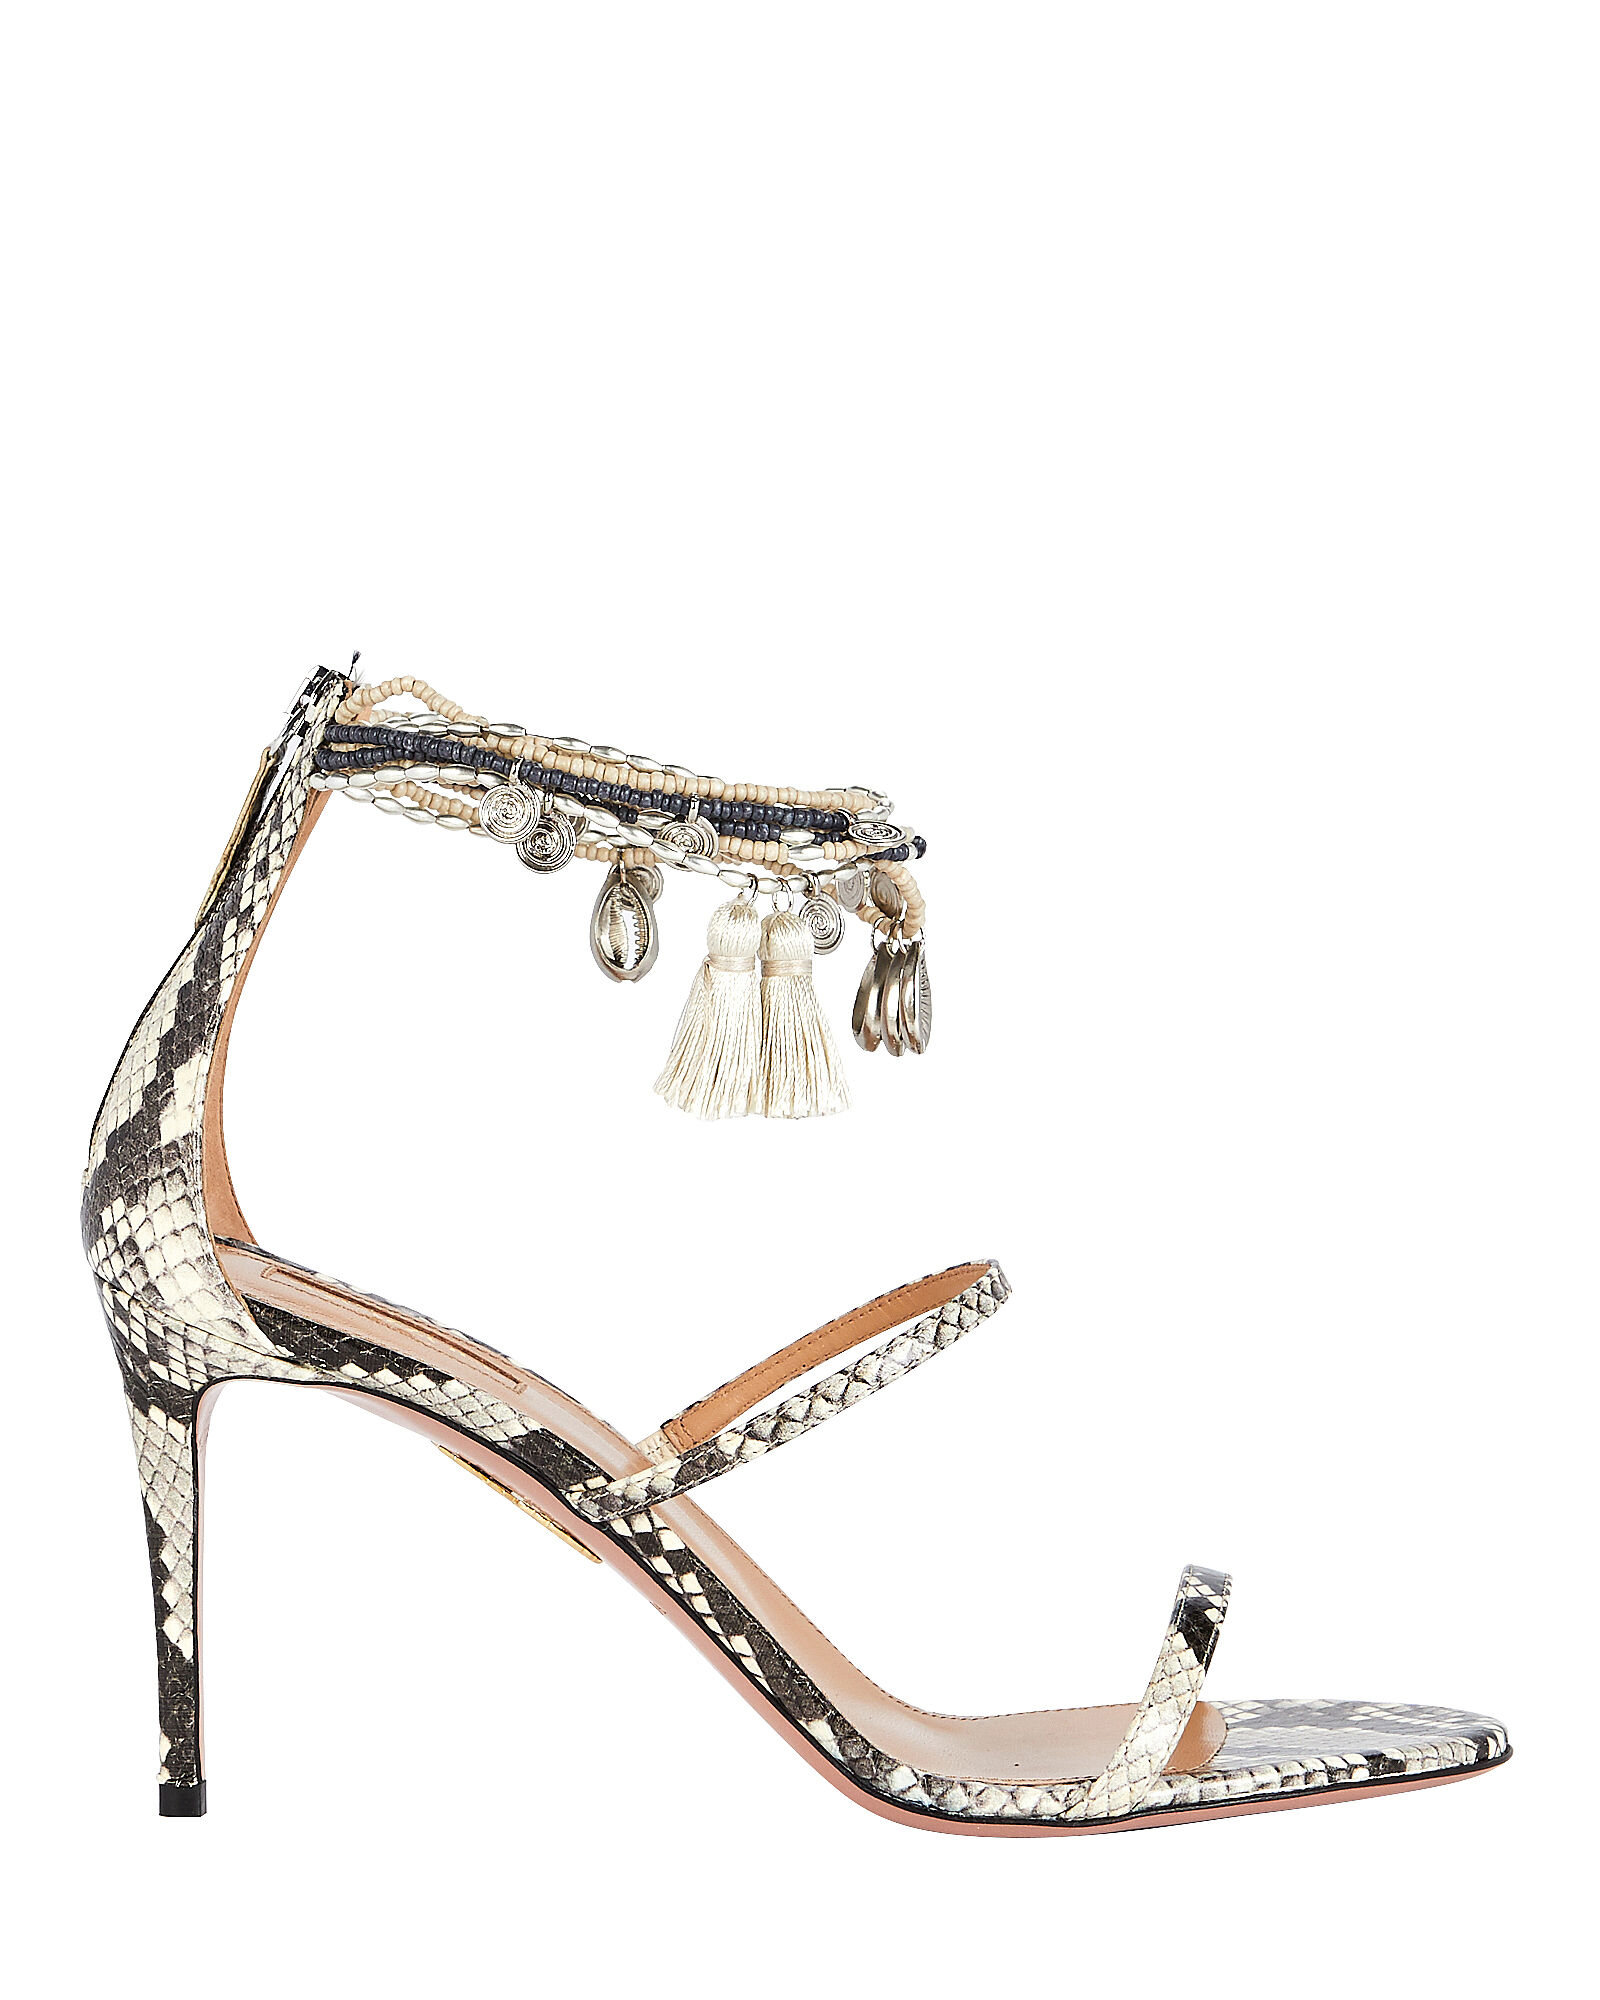 Beaded Python-Embossed Sandals, GREY PYTHON, hi-res